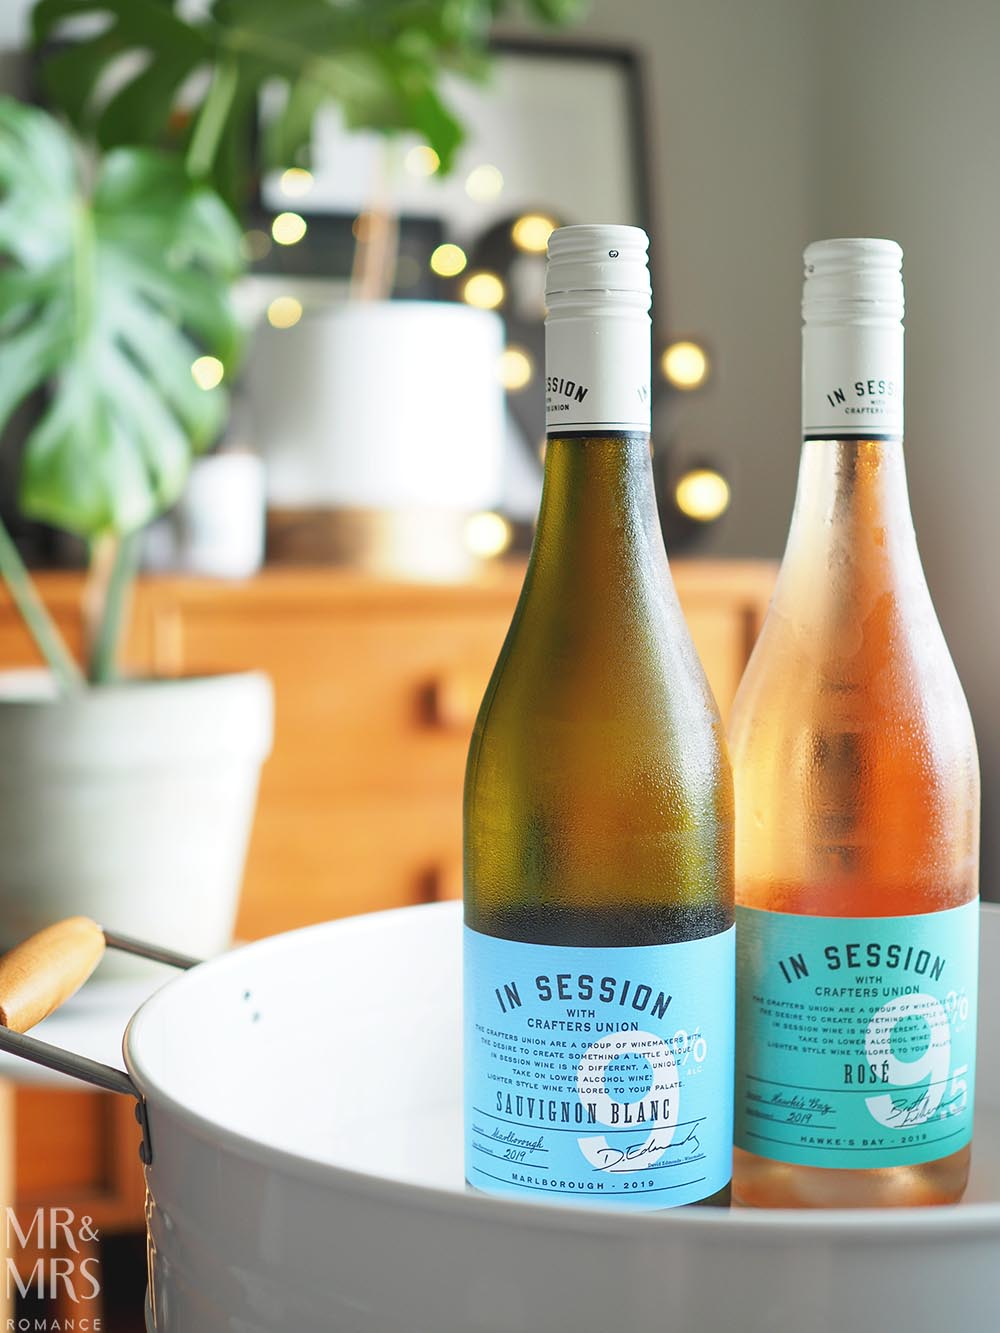 Crafters Union In Session light wines - Sauvignon Blanc and Rosé